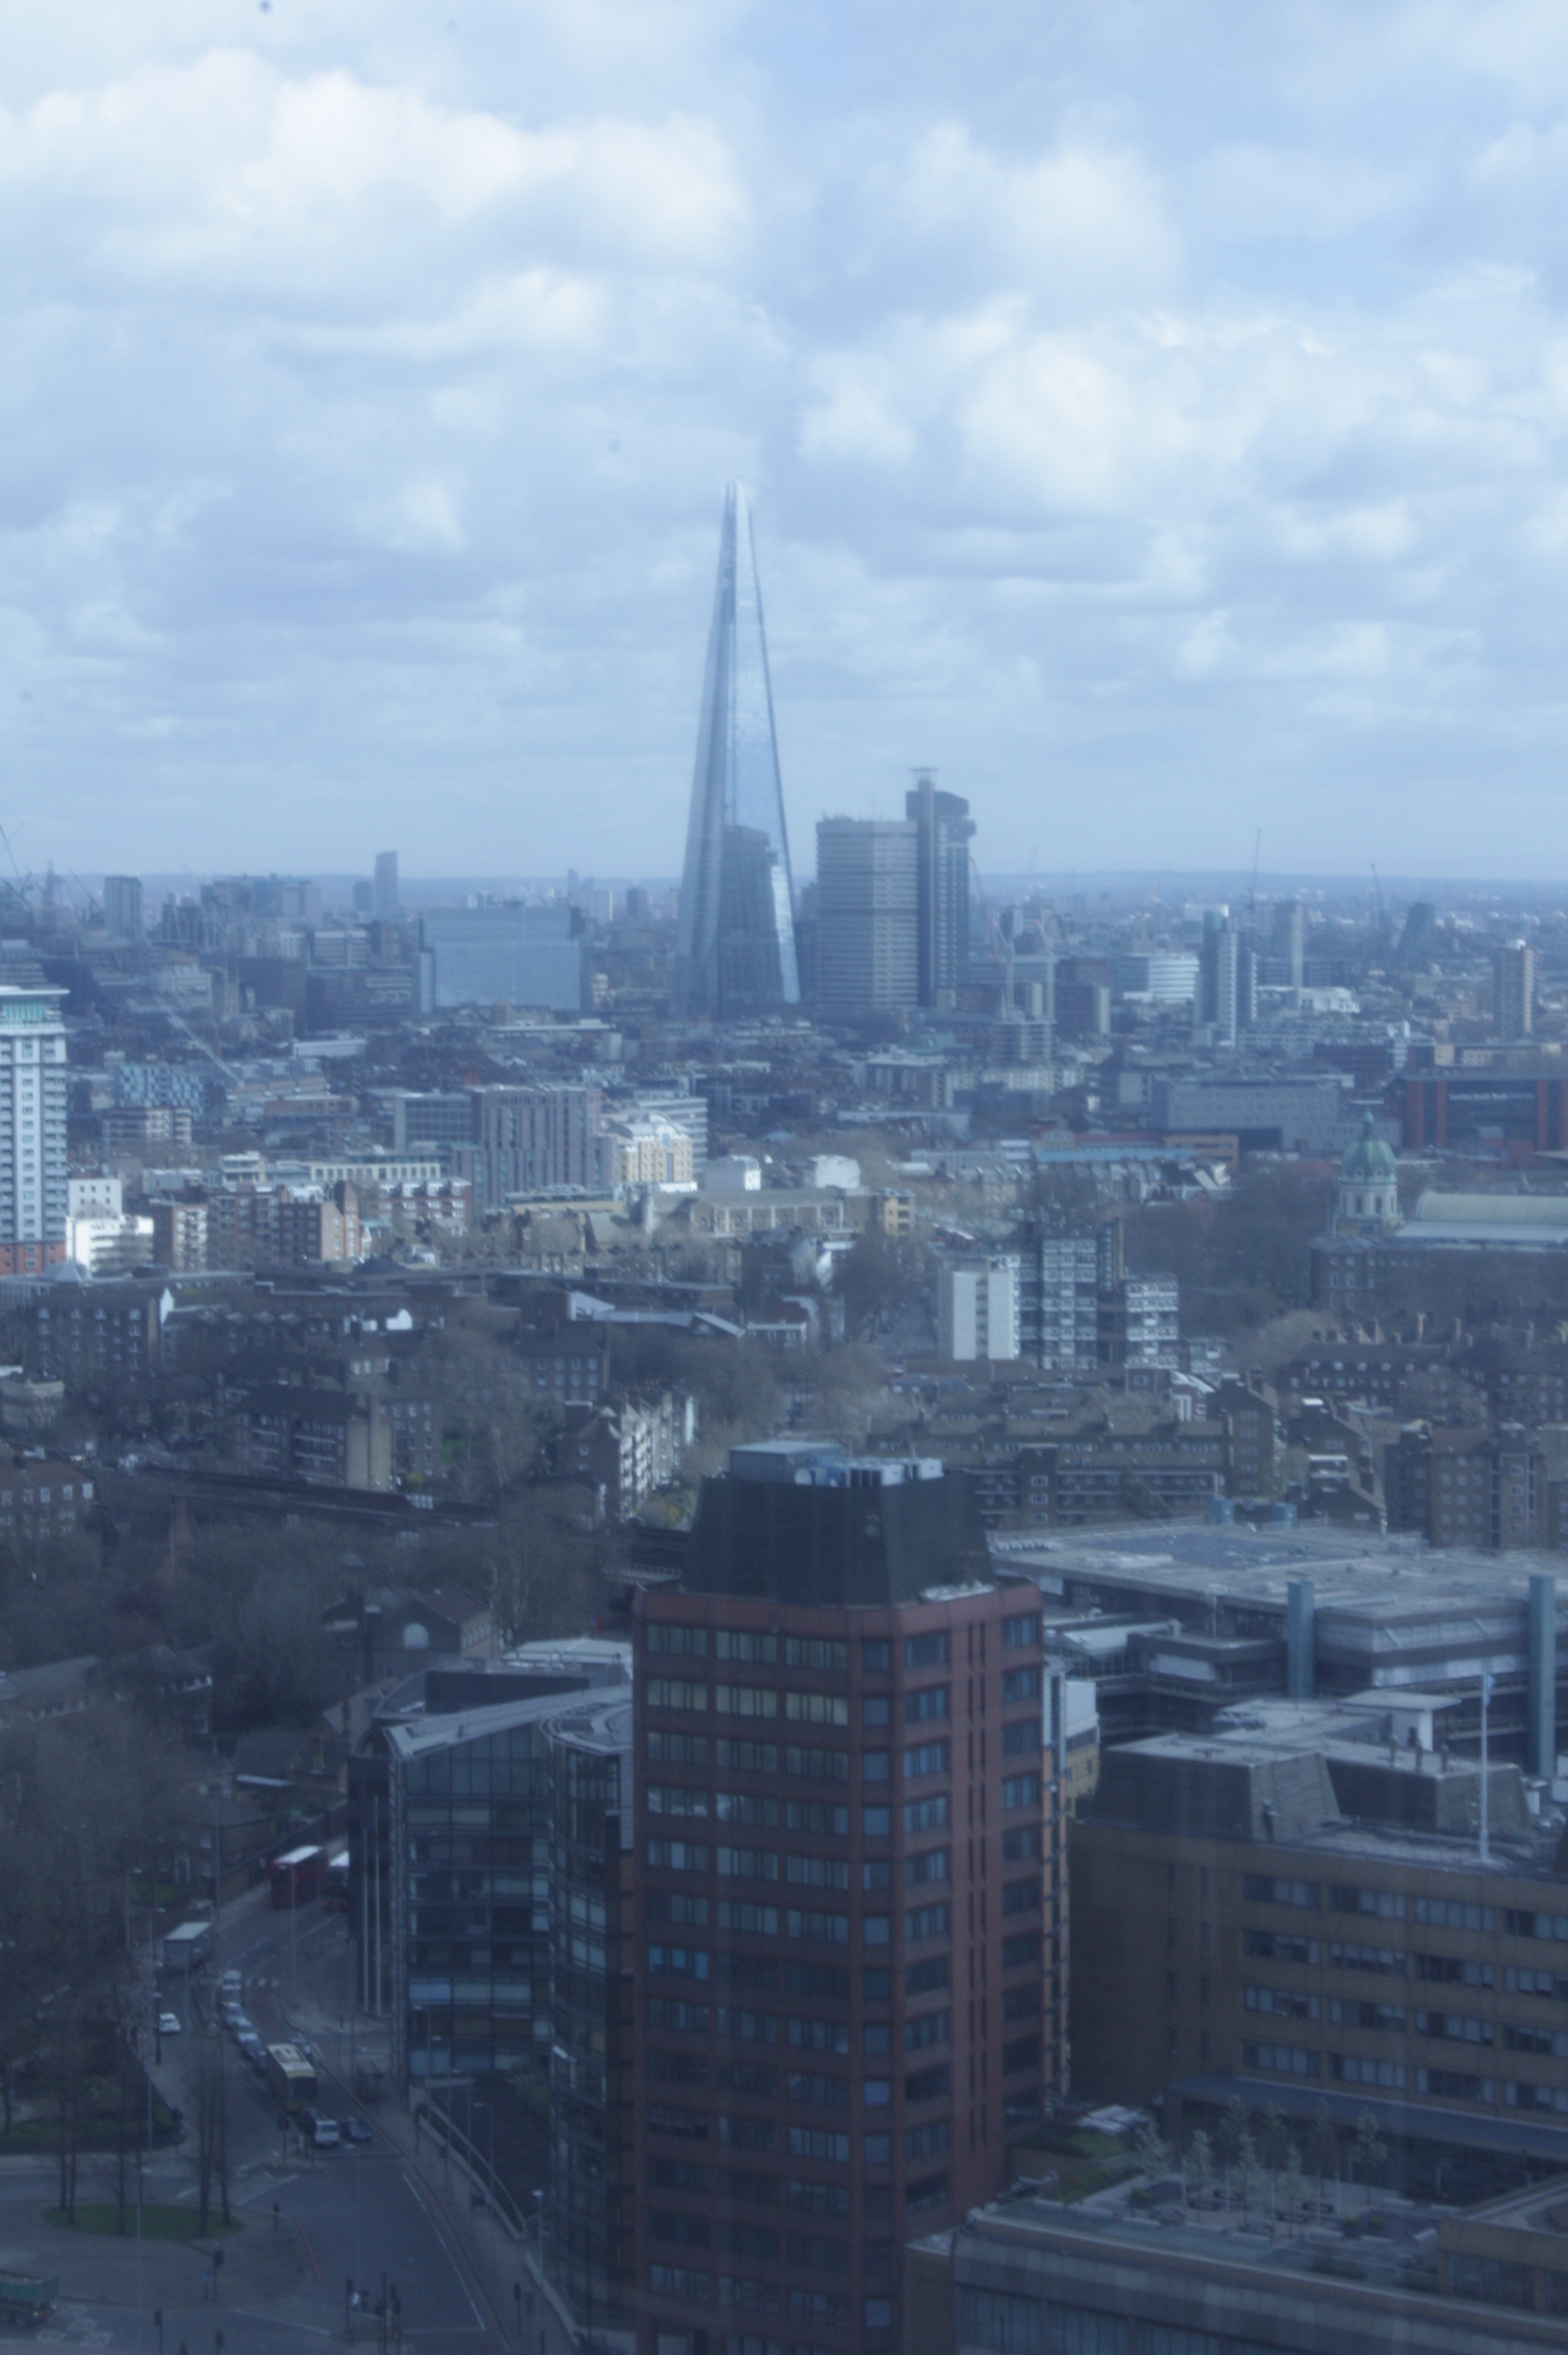 The Shard, as seen from an Invisalign conference